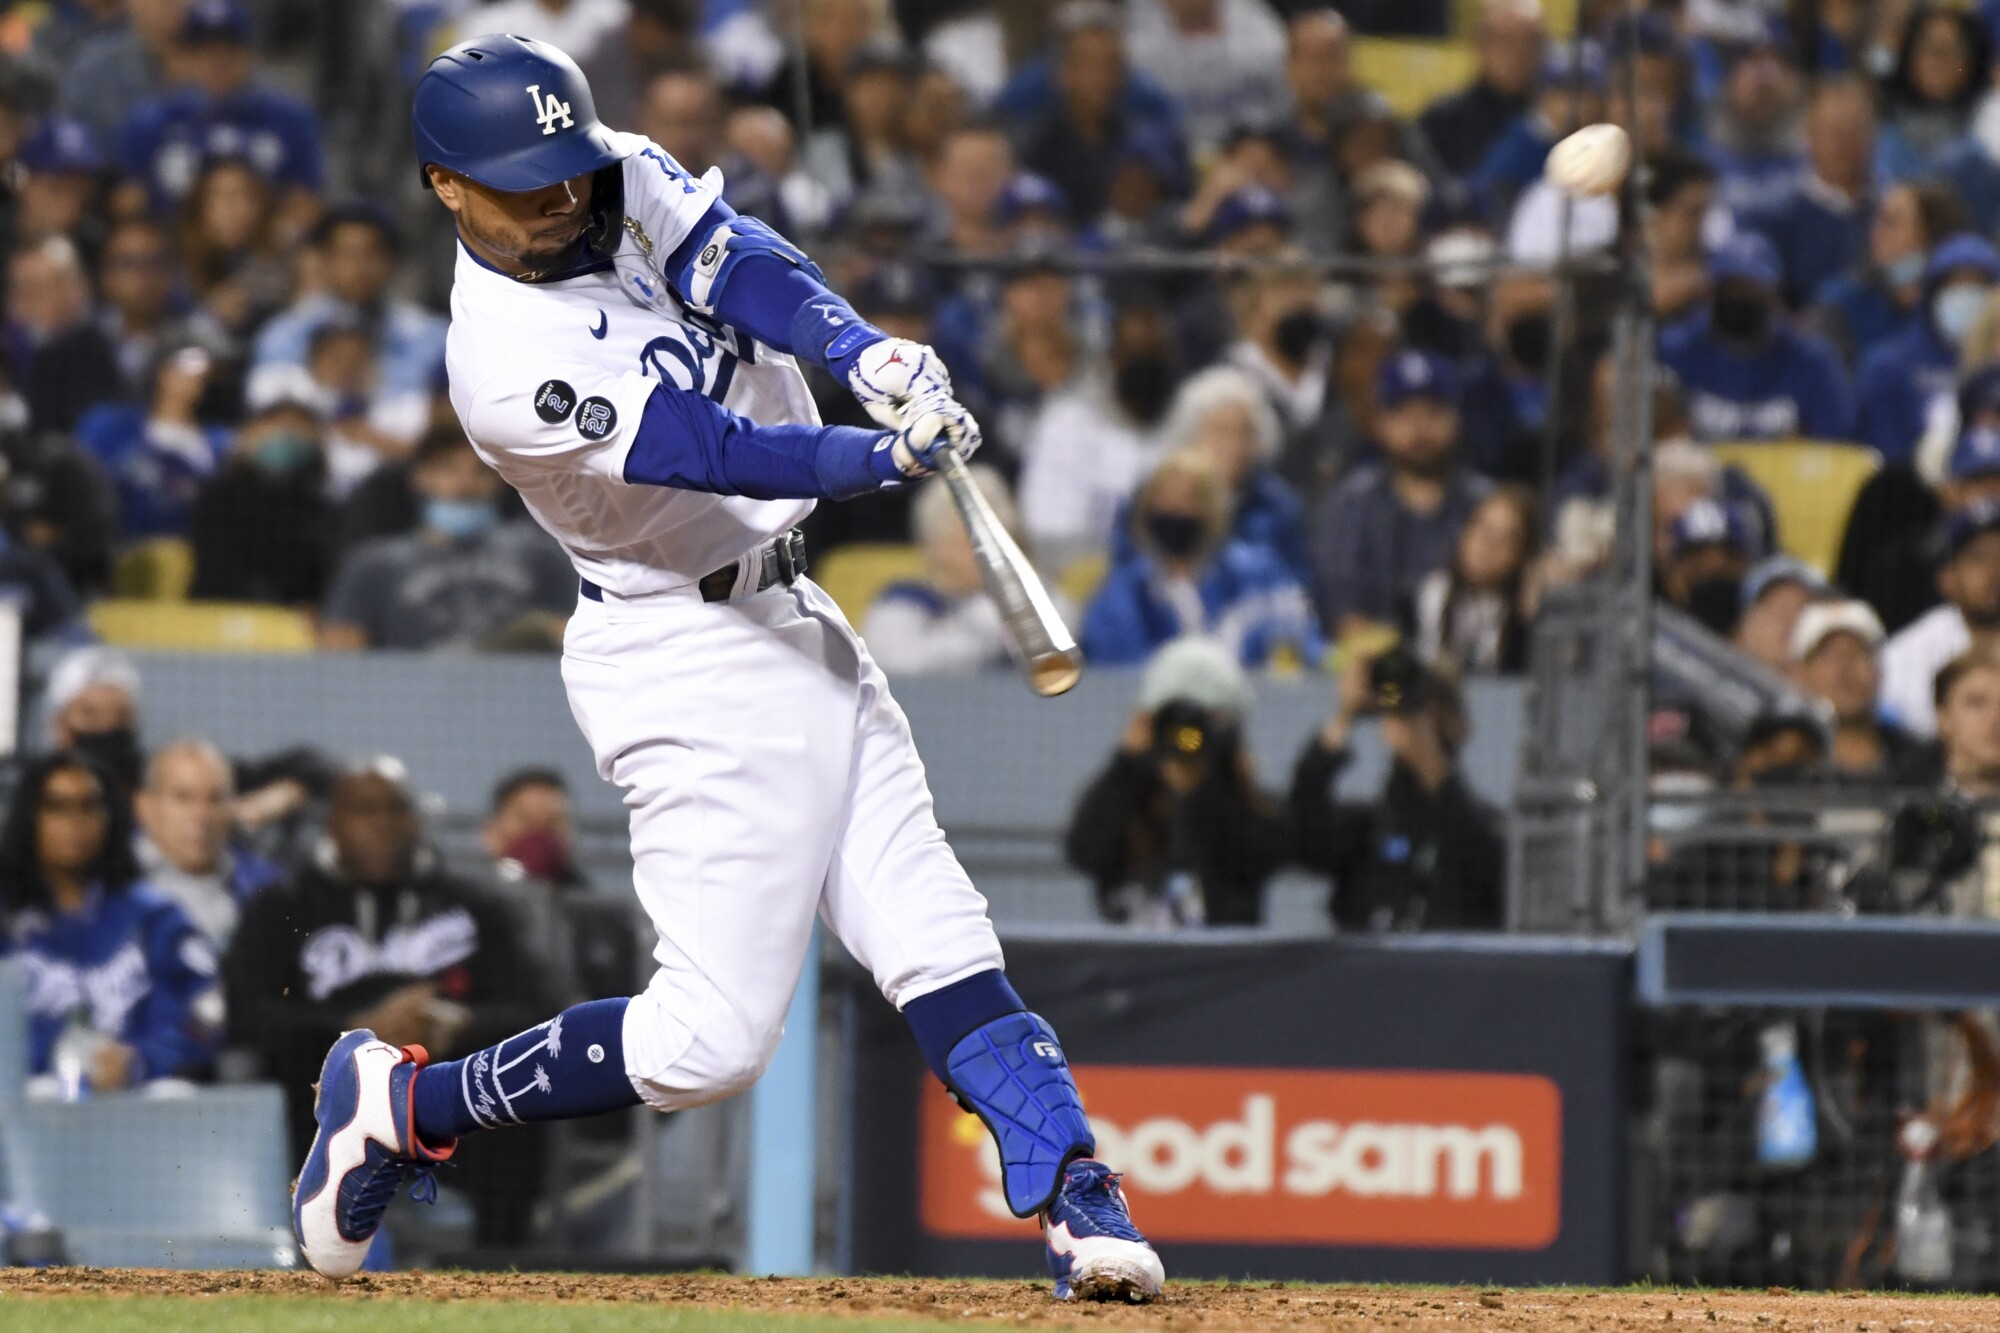 Dodgers defeat Giants 7-2 in NLDS Game 4 to force Game 5 - Los Angeles Times